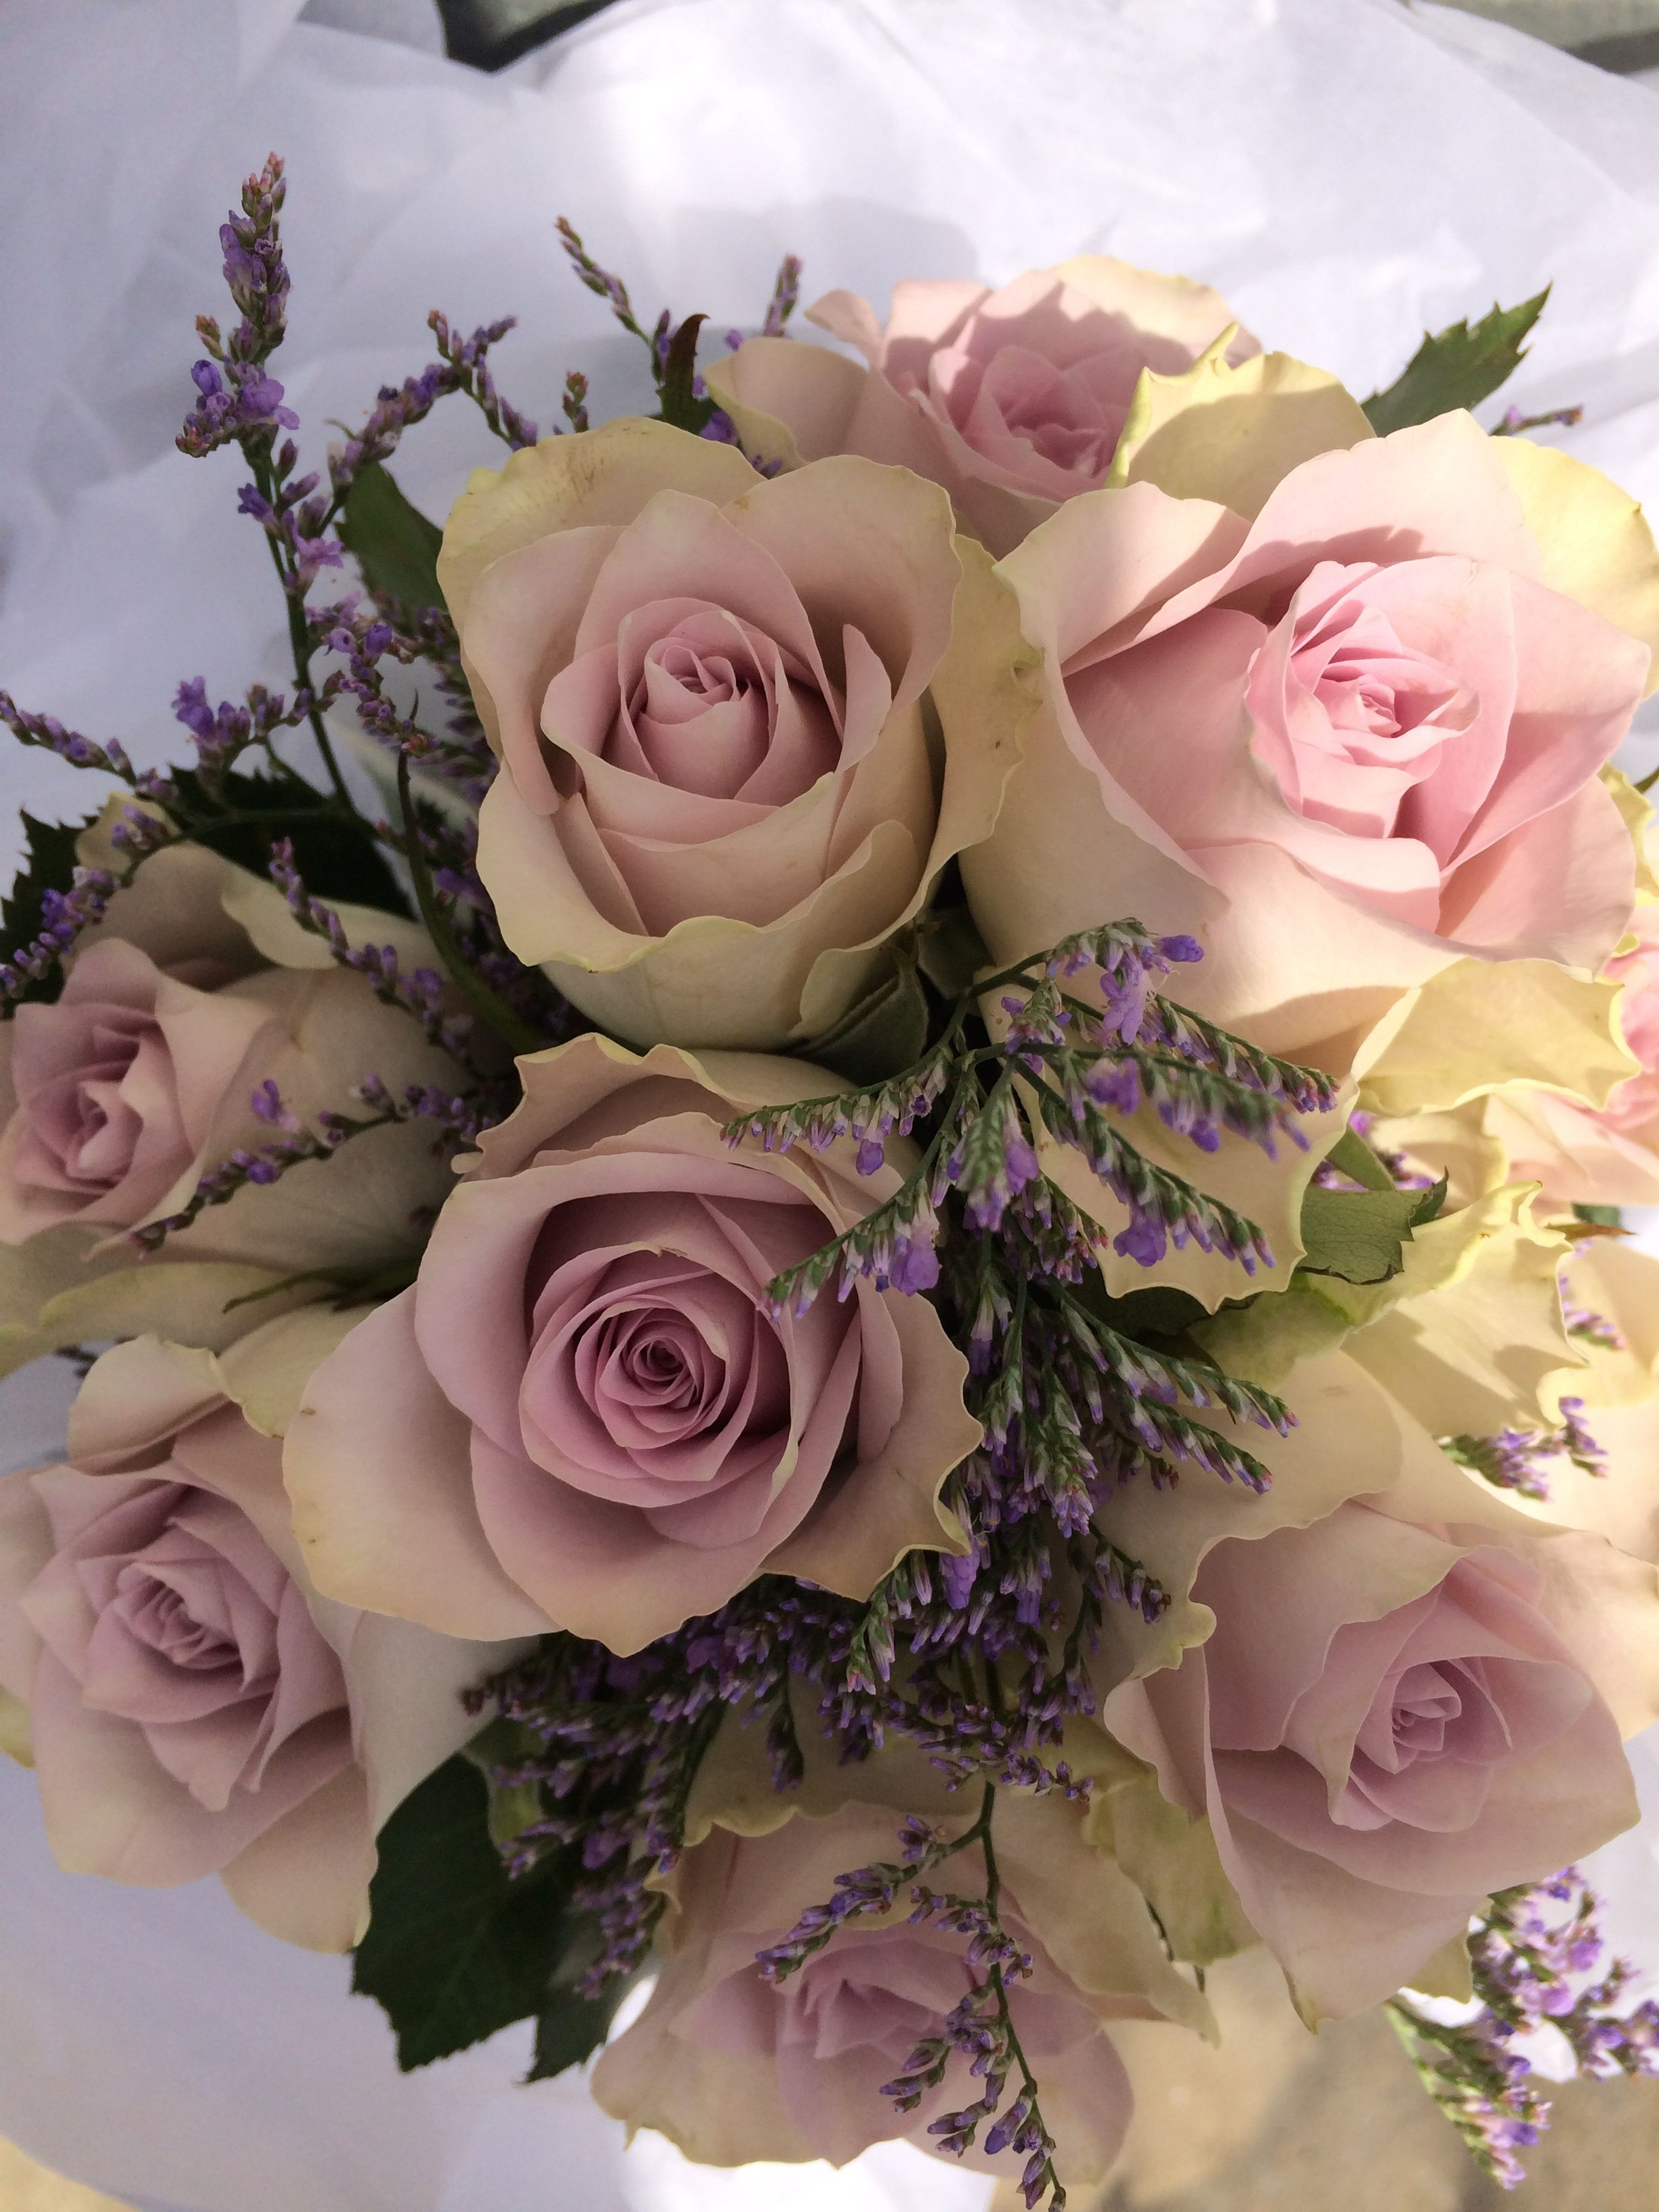 Beautiful arrangements #Wedding #Bouquet #Styling #weddingbouquets #bridebouquet #floralarrangements #flowerarrangements #flowerdesigns #floraldesigns http://www.decorit.com.au (3)